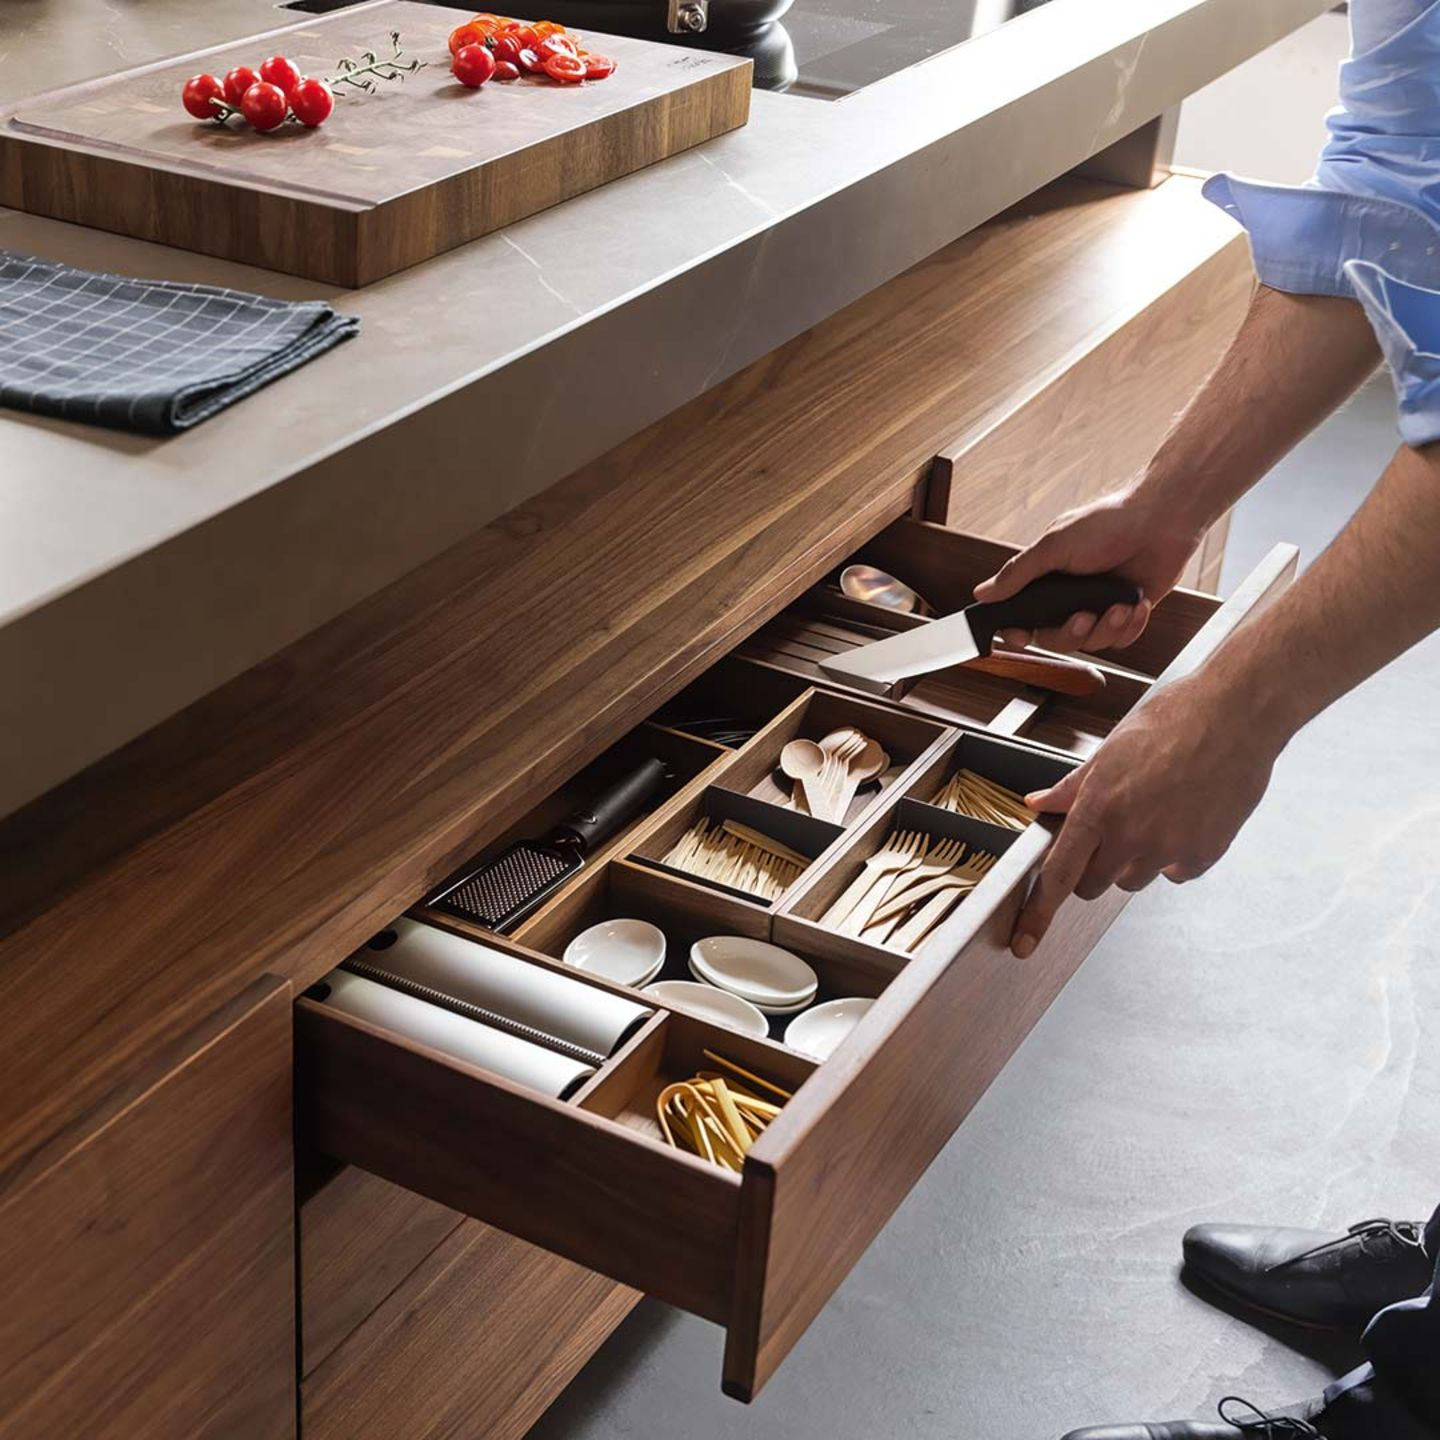 k7 kitchen island with drawer with practical interior organisation